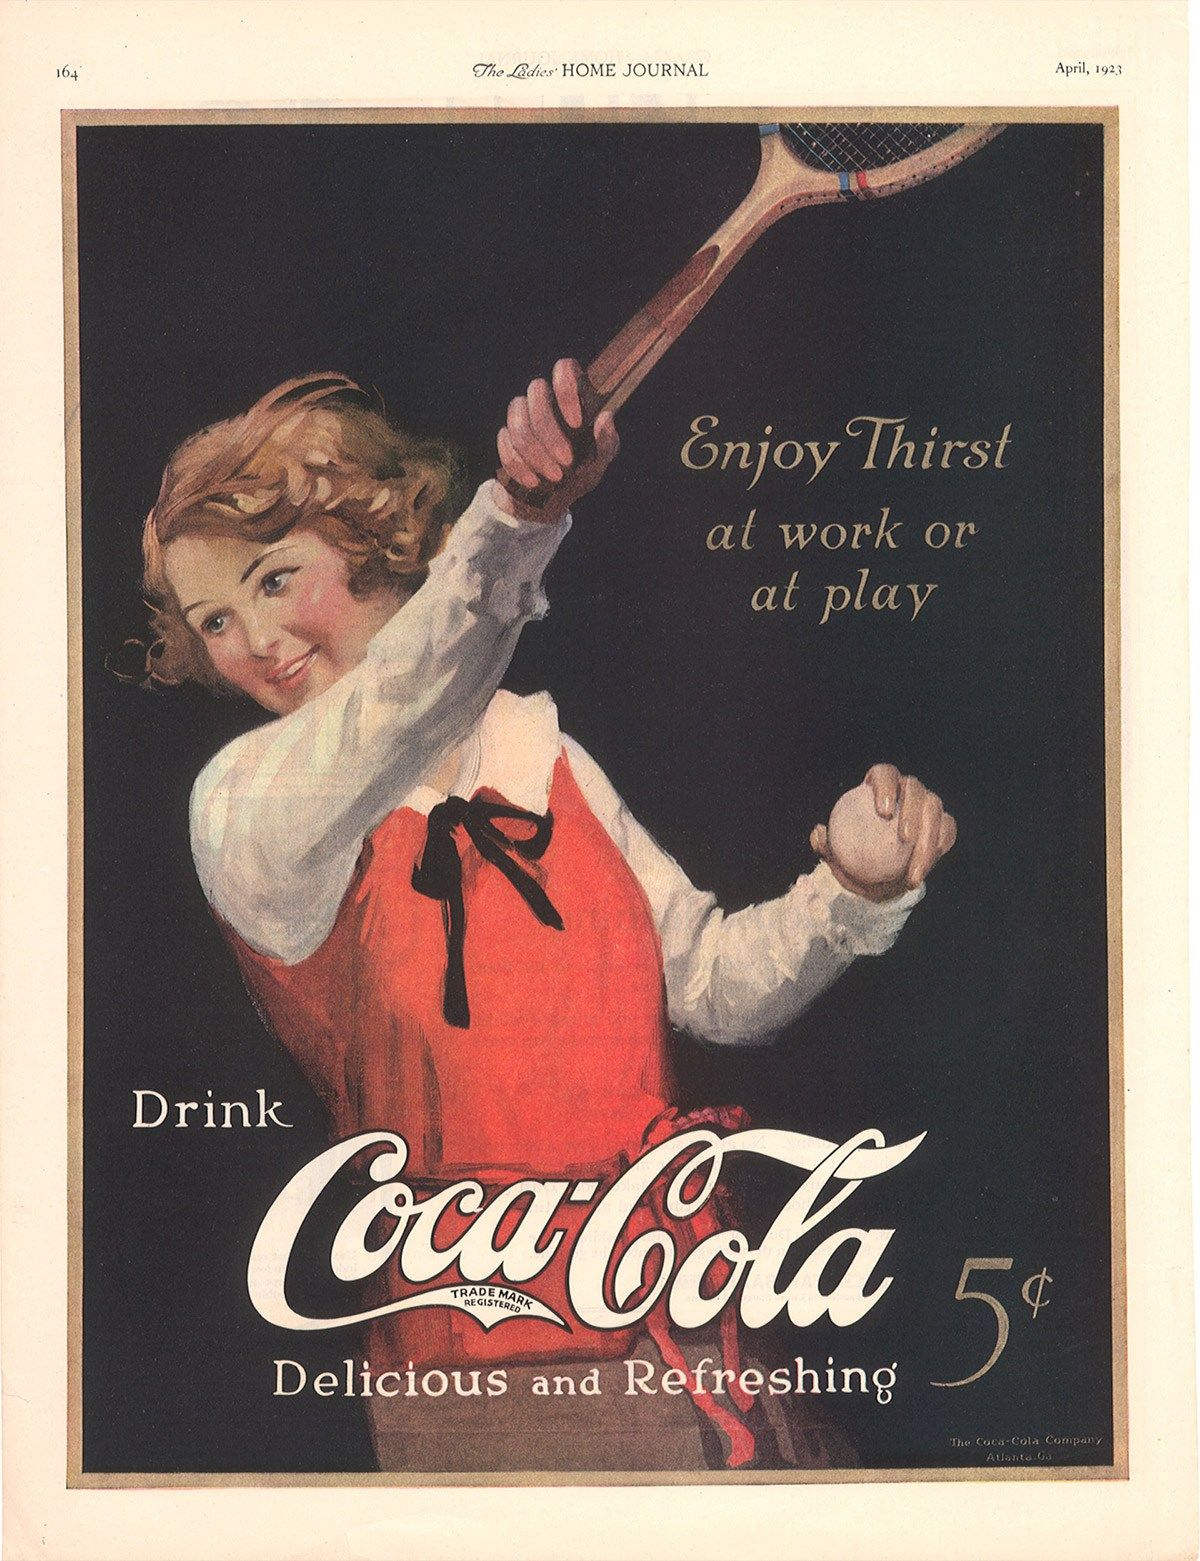 A history of coca-cola taglines: From 'drink coca-cola' to 'taste the feeling' From 'drink coca-cola' to 'taste the feeling': A history of coca-cola taglines  Since the coca-cola was born in 1886, it has changed its taglines several times making the history of coca-cola taglines so vast.  Some of them may be familiar to you depending upon the generation you belong to. The first official tagline of the coca-cola came out at the time when John Stith Pemberto